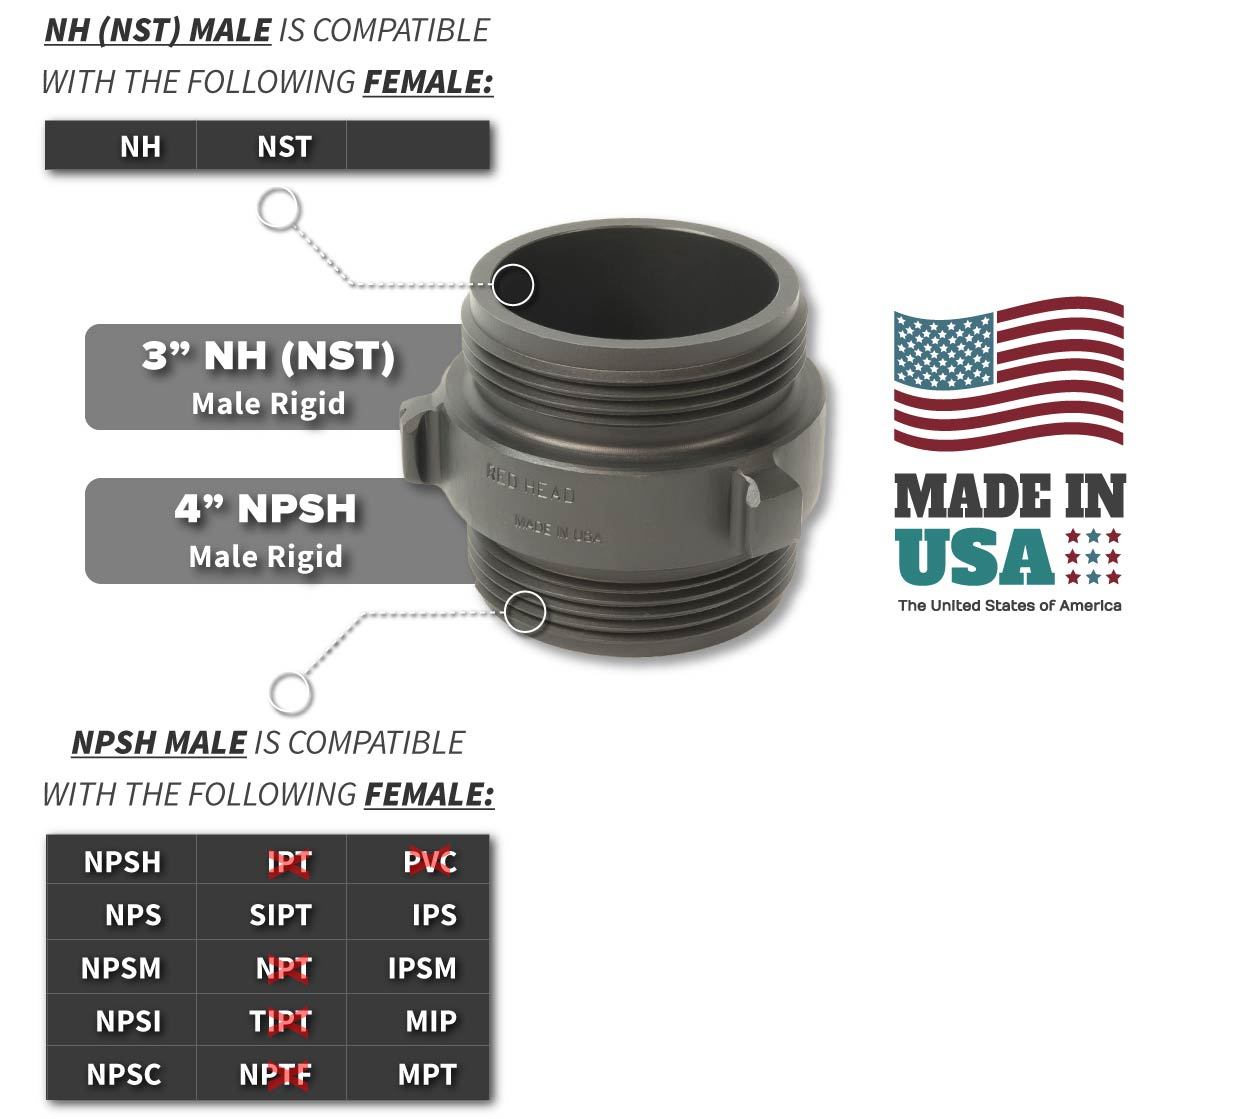 3 Inch NH-NST Male x 4 Inch NPSH Male Compatibility Thread Chart